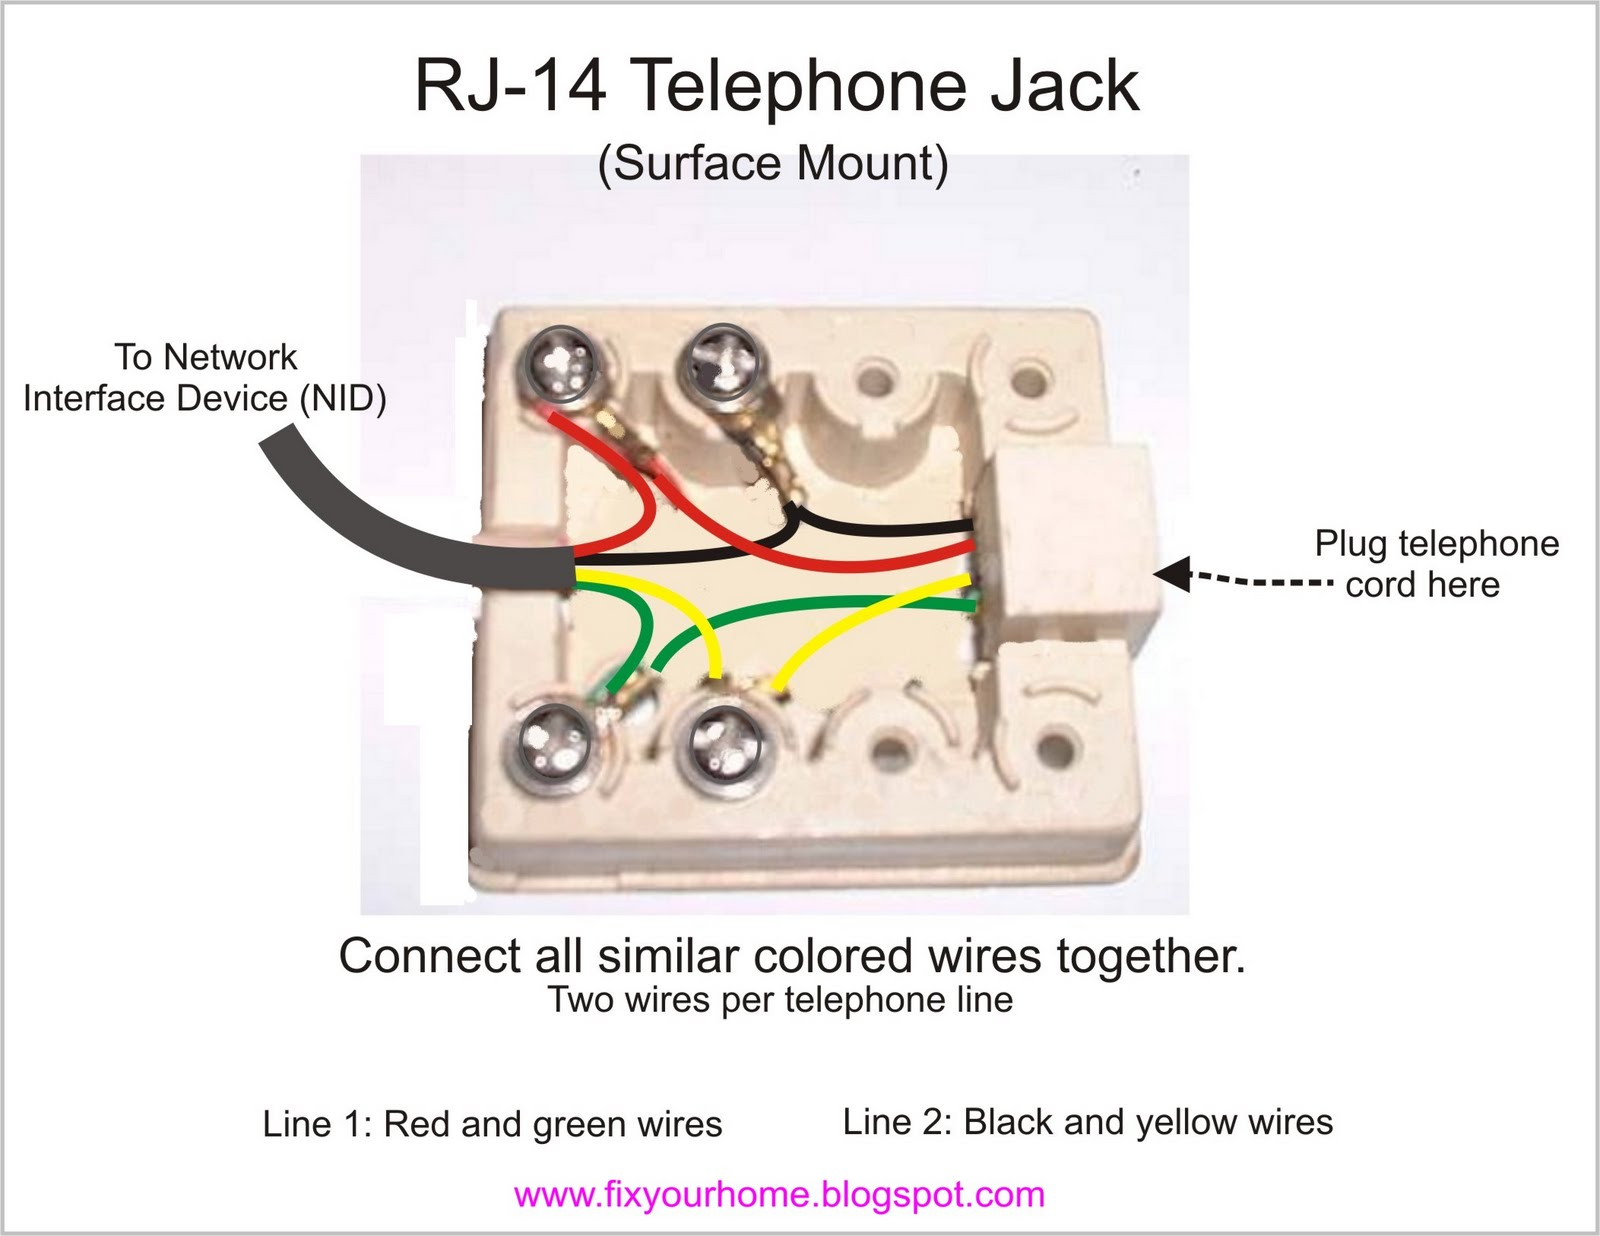 wiring diagram telephone wall jack plate html with Telephone Jack on Bellwirenutshell furthermore 6ucr9 Recently Purchased Model 2554 Phone Wanted Wire besides Telstra Wall Plate Wiring Diagram together with Modular moreover Telephone Jack.